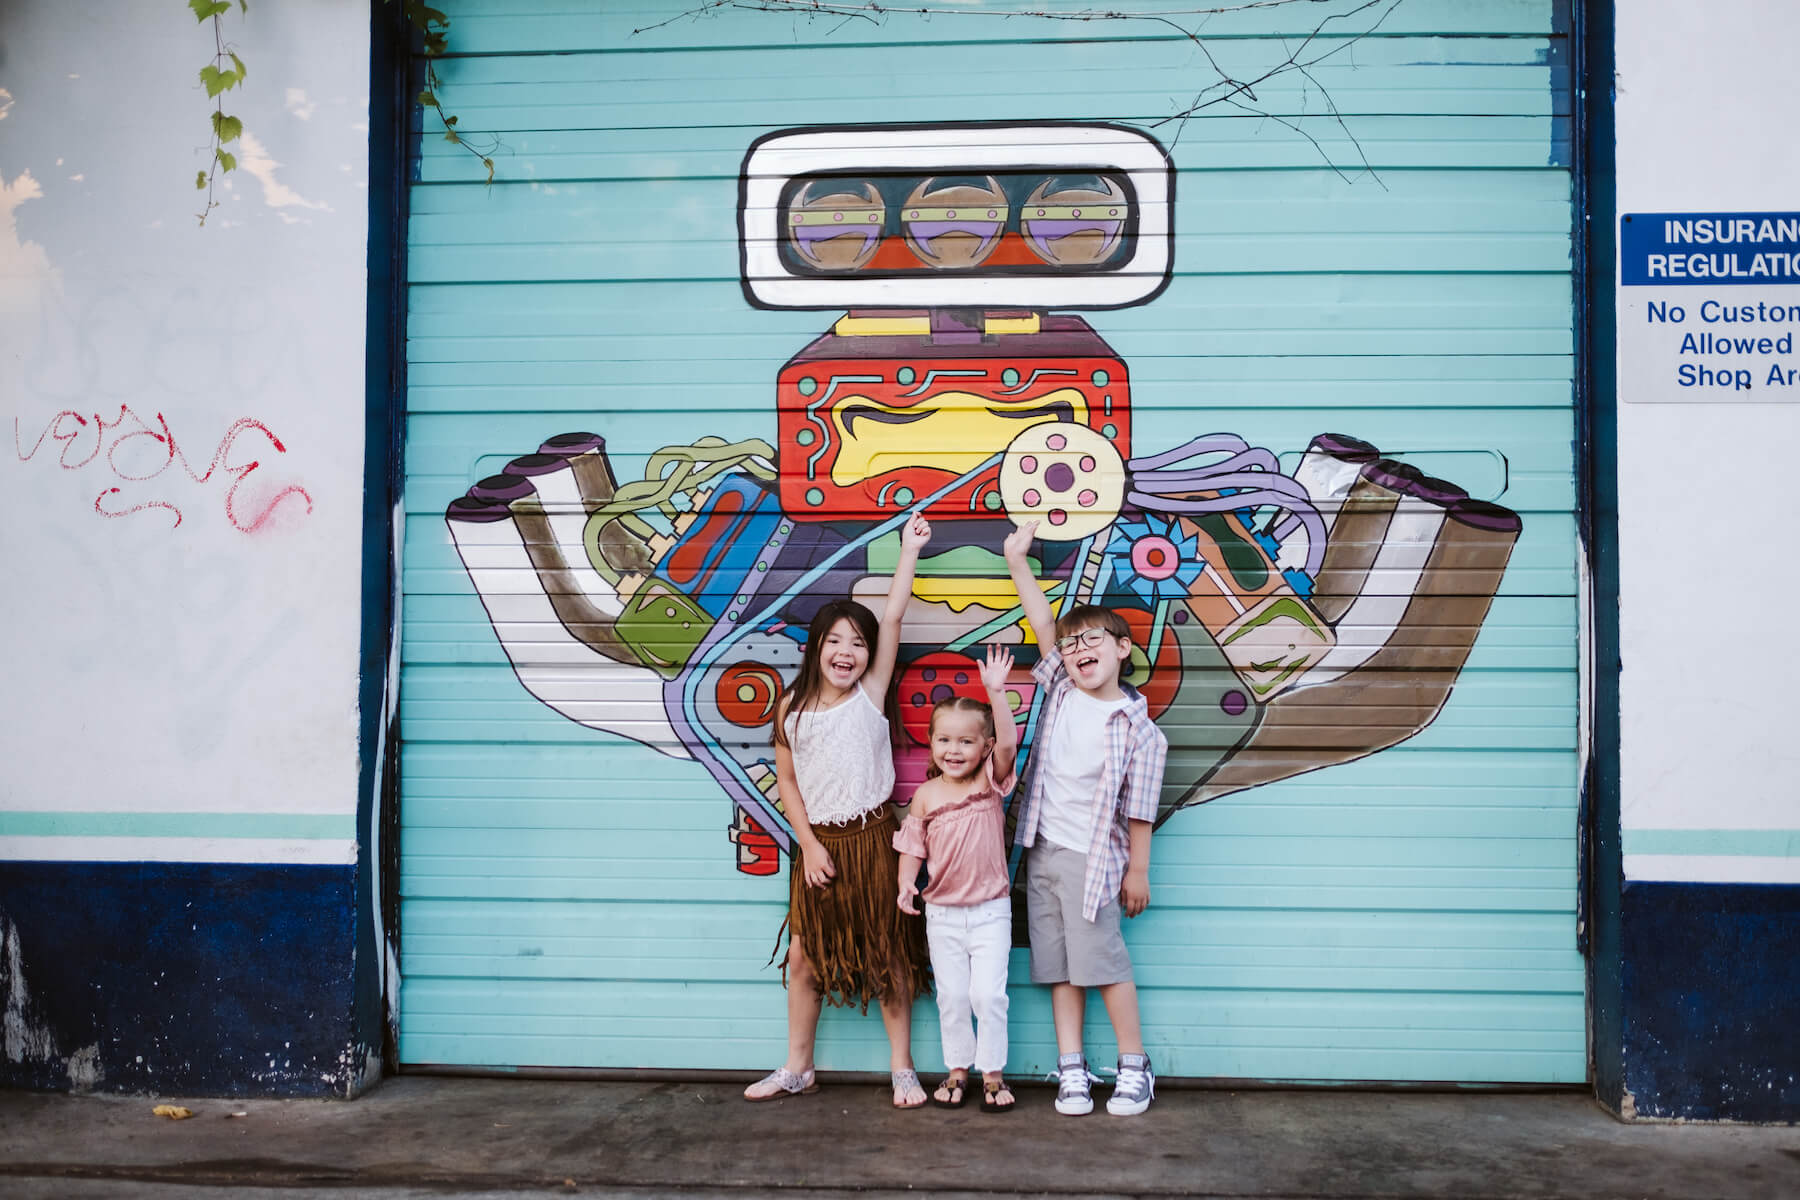 Kids in front of graffiti having fun and holding that arms up in the air in Austin, Texas